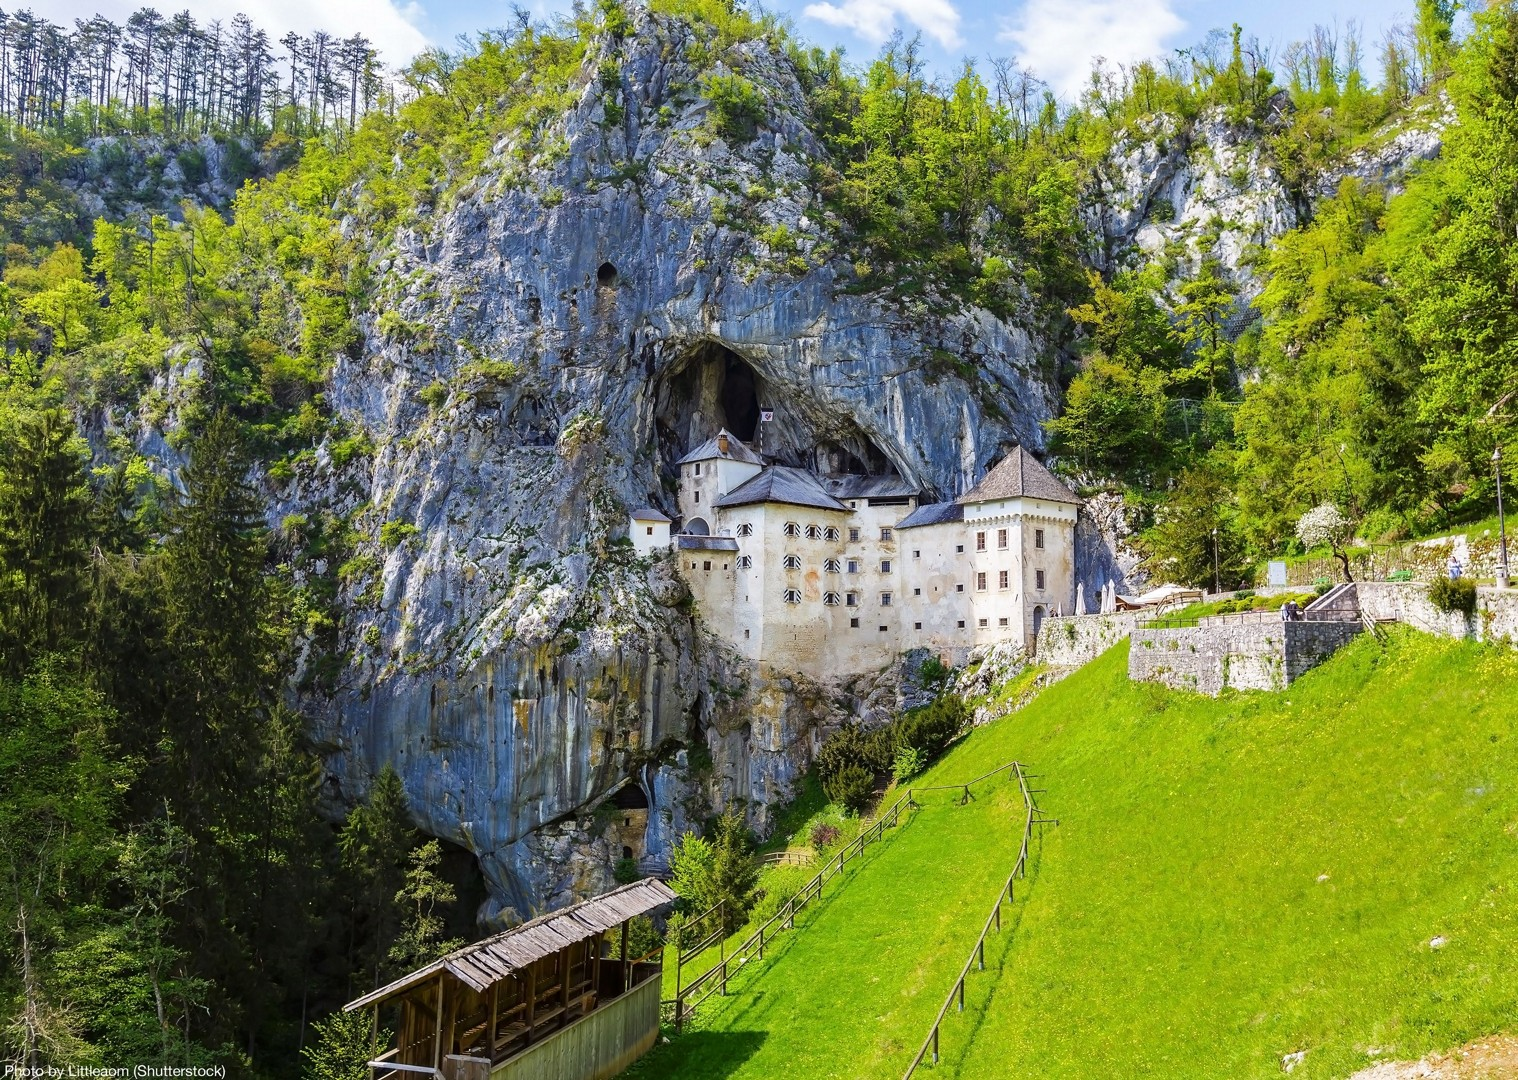 karst-caves-cycle-slovenia-from-capital-to-coast.jpg - NEW! Slovenia - Capital to Coast - Leisure Cycling